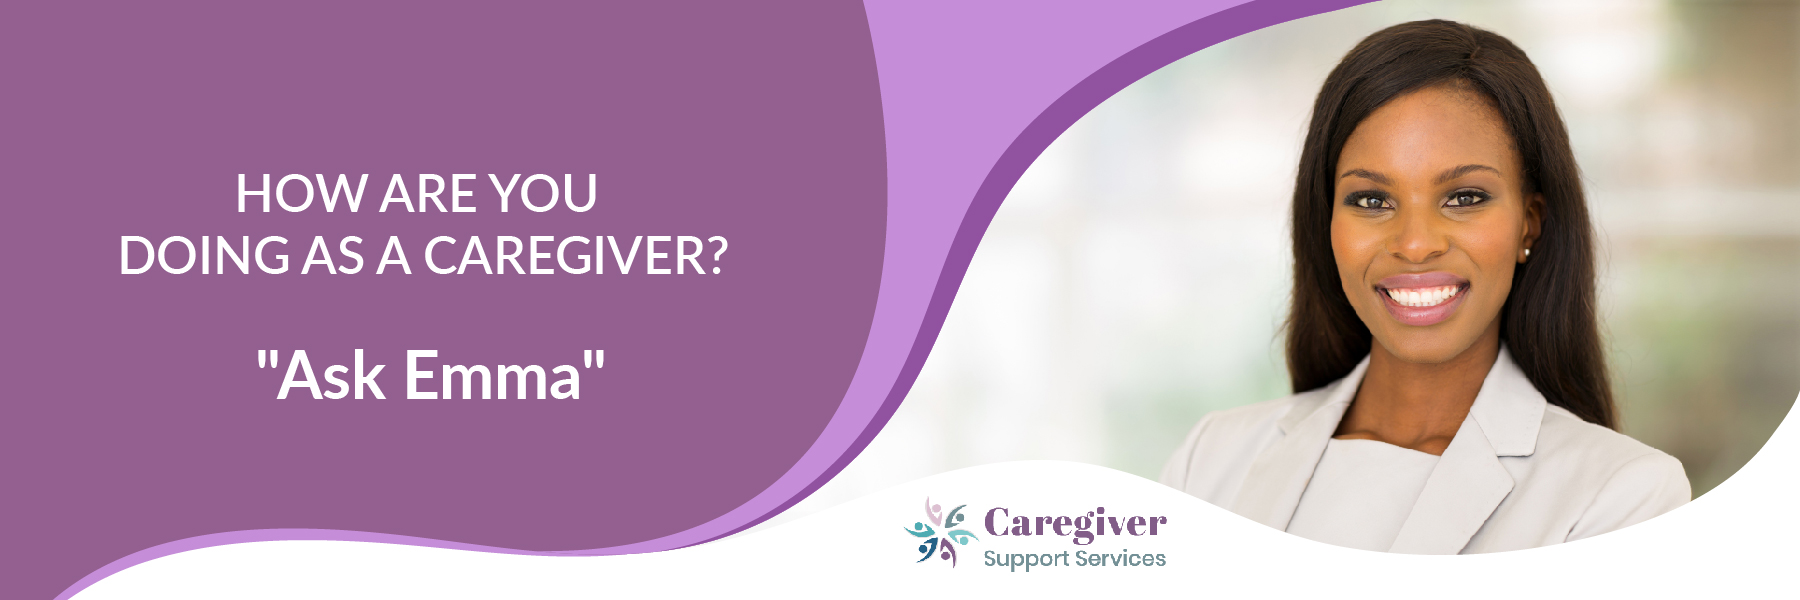 Ask Emma - Caregiver Wellness Assessment